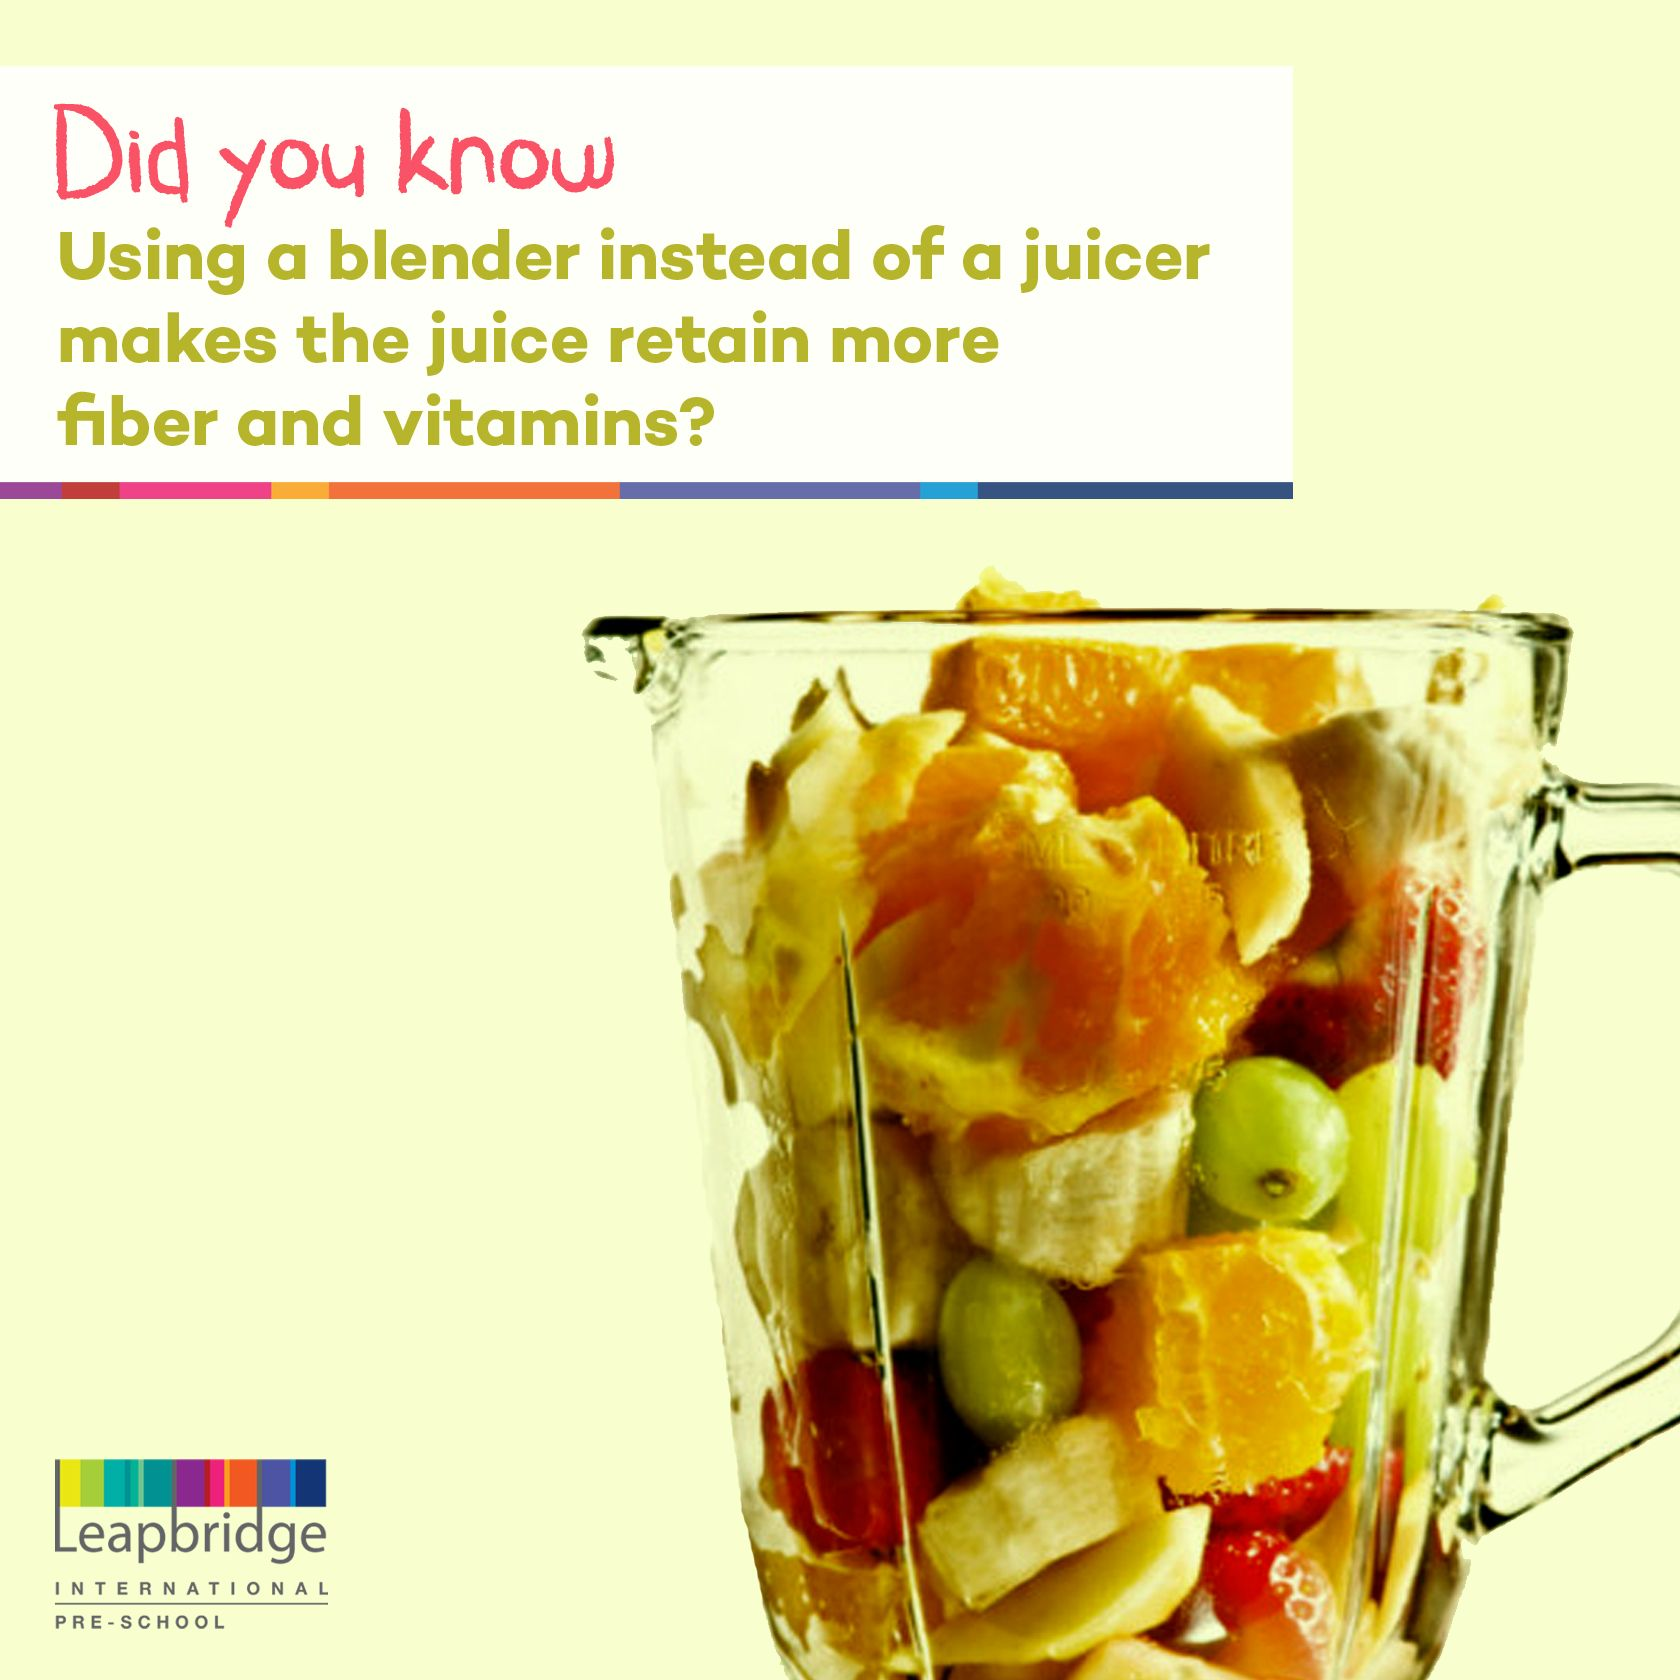 Use a blender instead of a juicer when making fruit juice this summer. It's healthier. Follow us for more such interesting posts! Feel free to comment and add thoughts or suggestions!